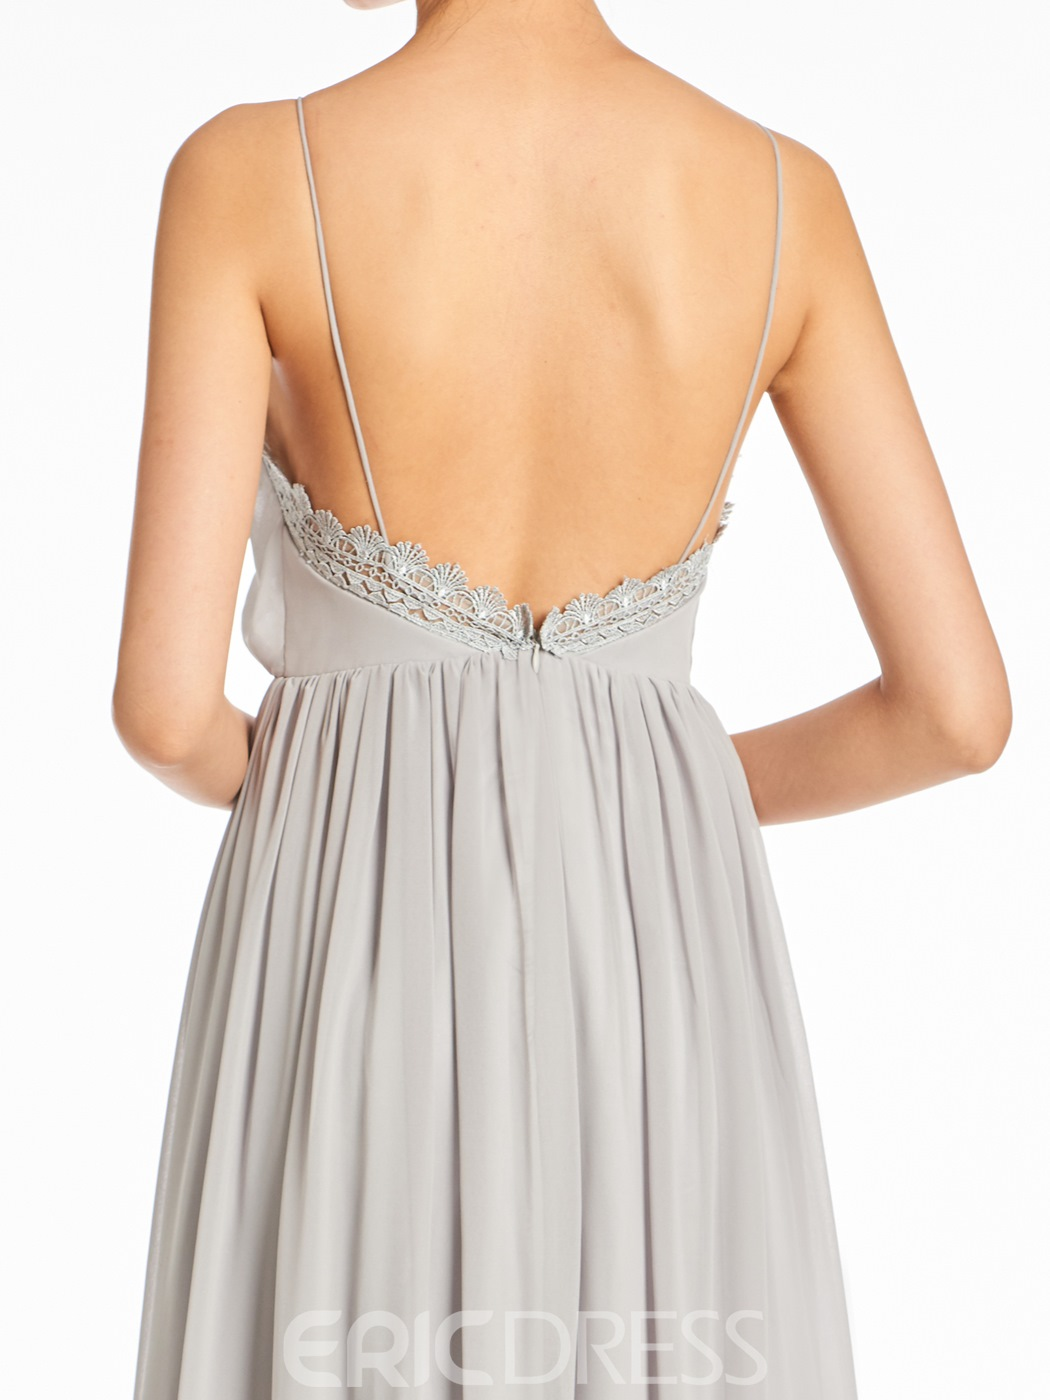 Ericdress Spaghetti Straps A-Line Backless Bridesmaid Dress